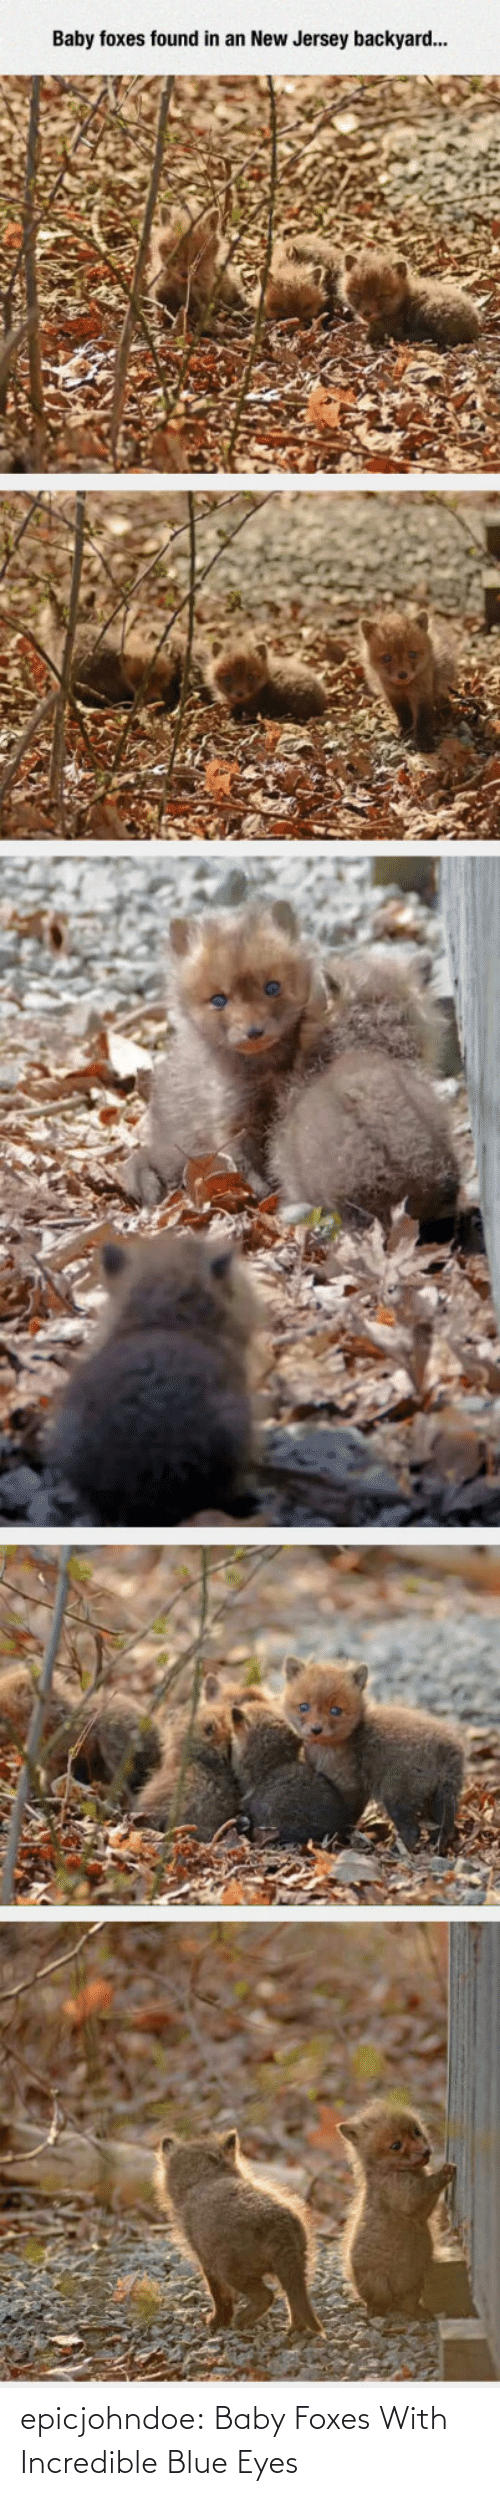 foxes: epicjohndoe:  Baby Foxes With Incredible Blue Eyes